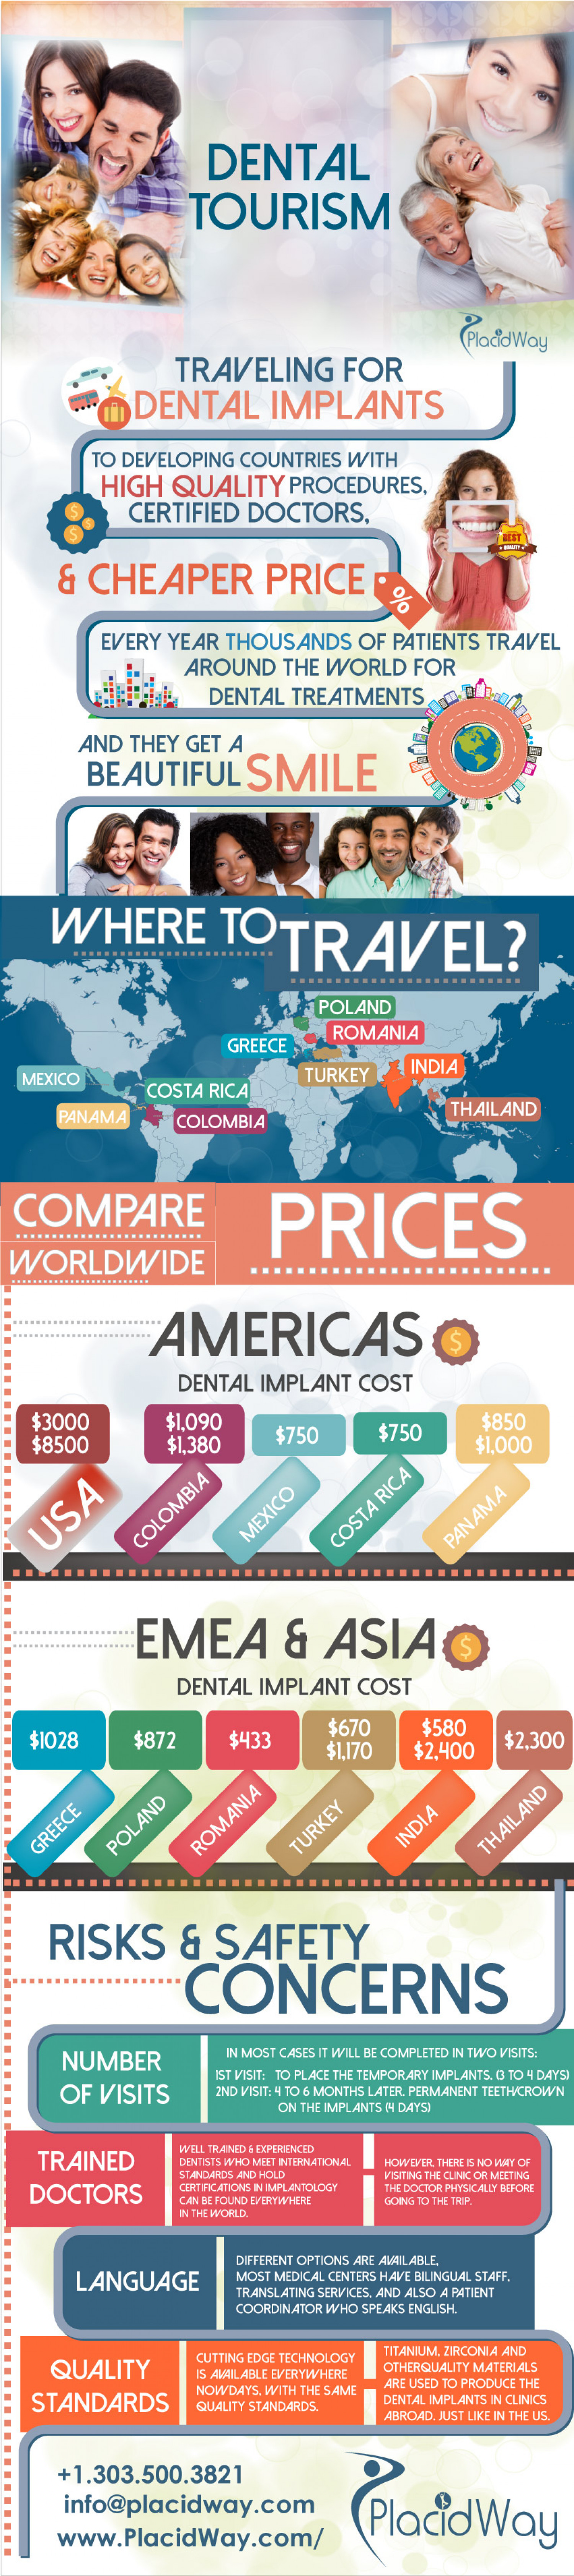 Travel for High Quality Dental Implants Abroad -  Explained! Infographic